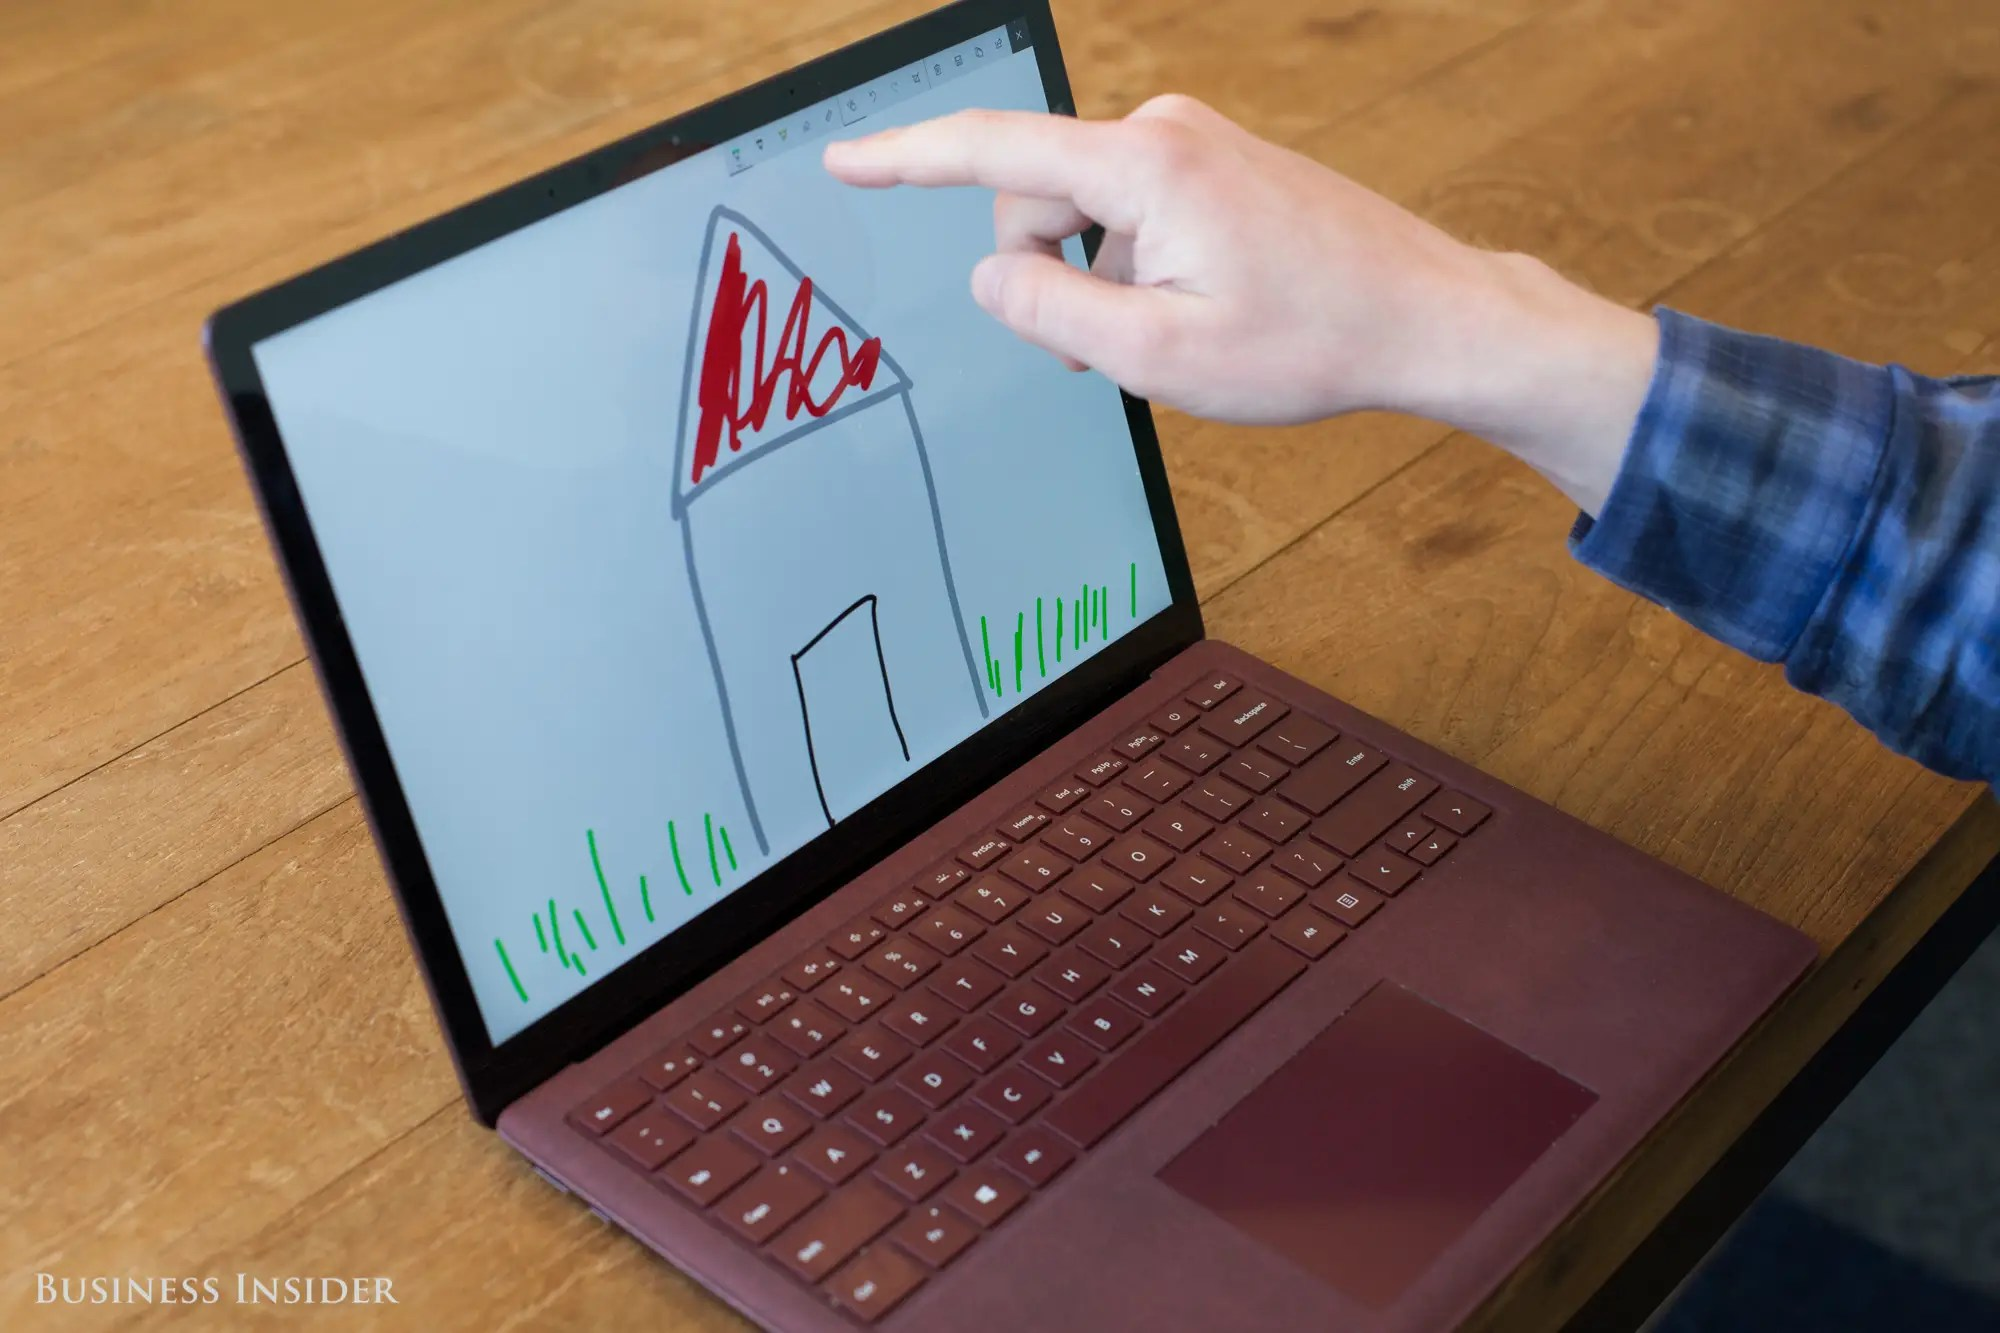 It's also pretty pricey, so you may want to look at another Surface device.